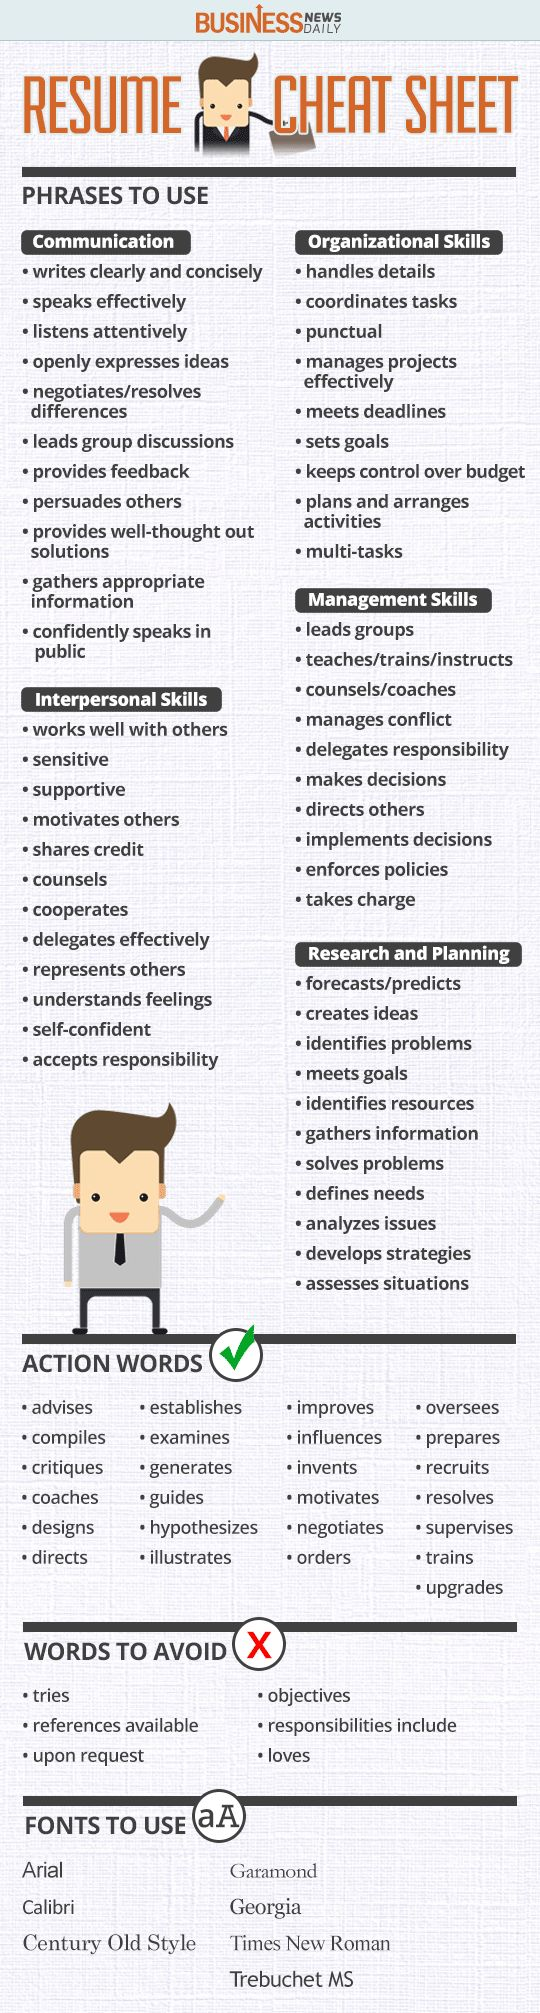 Opposenewapstandardsus  Unusual  Ideas About Resume On Pinterest  Cv Format Resume Cv And  With Entrancing Resume Cheat Sheet Infographic Andrews Almost Done With A Complete Unit On Employment Which With Attractive Professional Profile For Resume Also Legal Assistant Resume Examples In Addition Examples Of Accomplishments On A Resume And Additional Information For Resume As Well As Example Of Resume Profile Additionally Resume To Cv From Pinterestcom With Opposenewapstandardsus  Entrancing  Ideas About Resume On Pinterest  Cv Format Resume Cv And  With Attractive Resume Cheat Sheet Infographic Andrews Almost Done With A Complete Unit On Employment Which And Unusual Professional Profile For Resume Also Legal Assistant Resume Examples In Addition Examples Of Accomplishments On A Resume From Pinterestcom